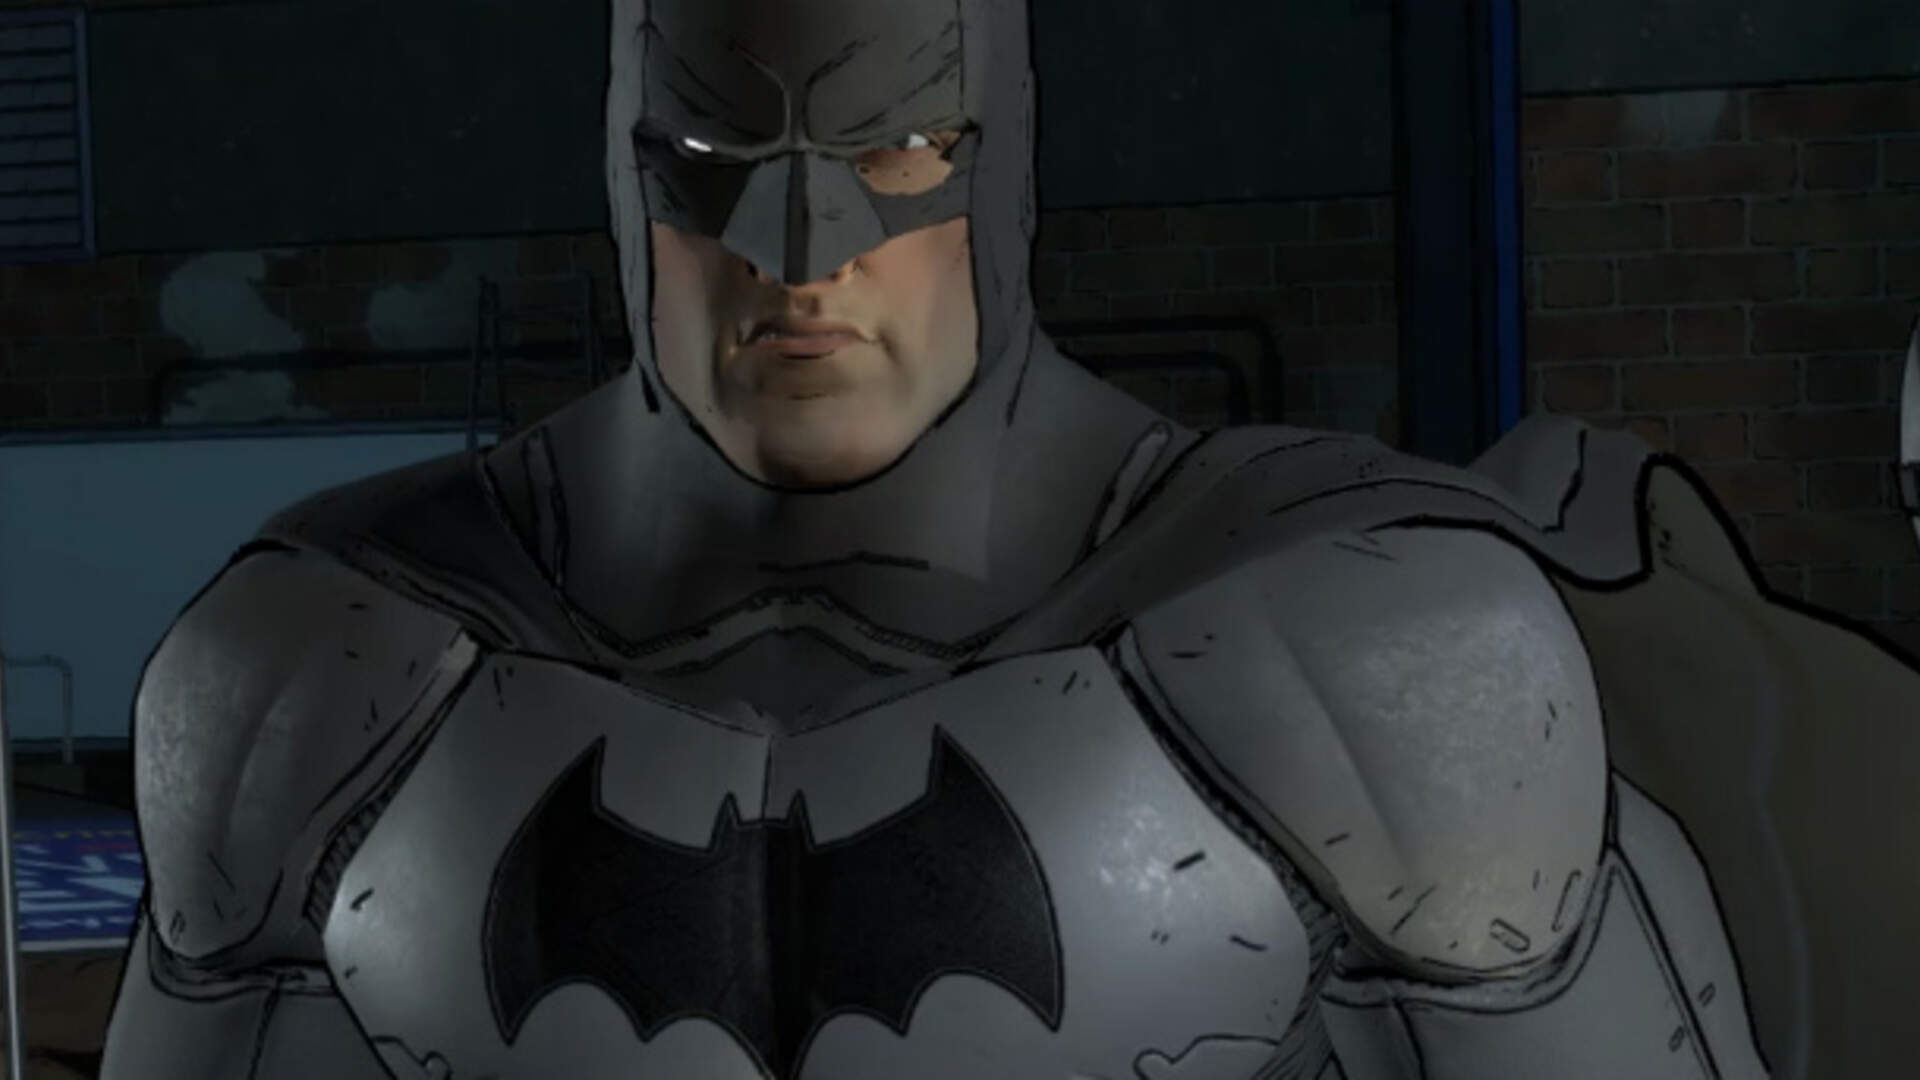 Batman: The Telltale Series Episode 3 Coming October 25